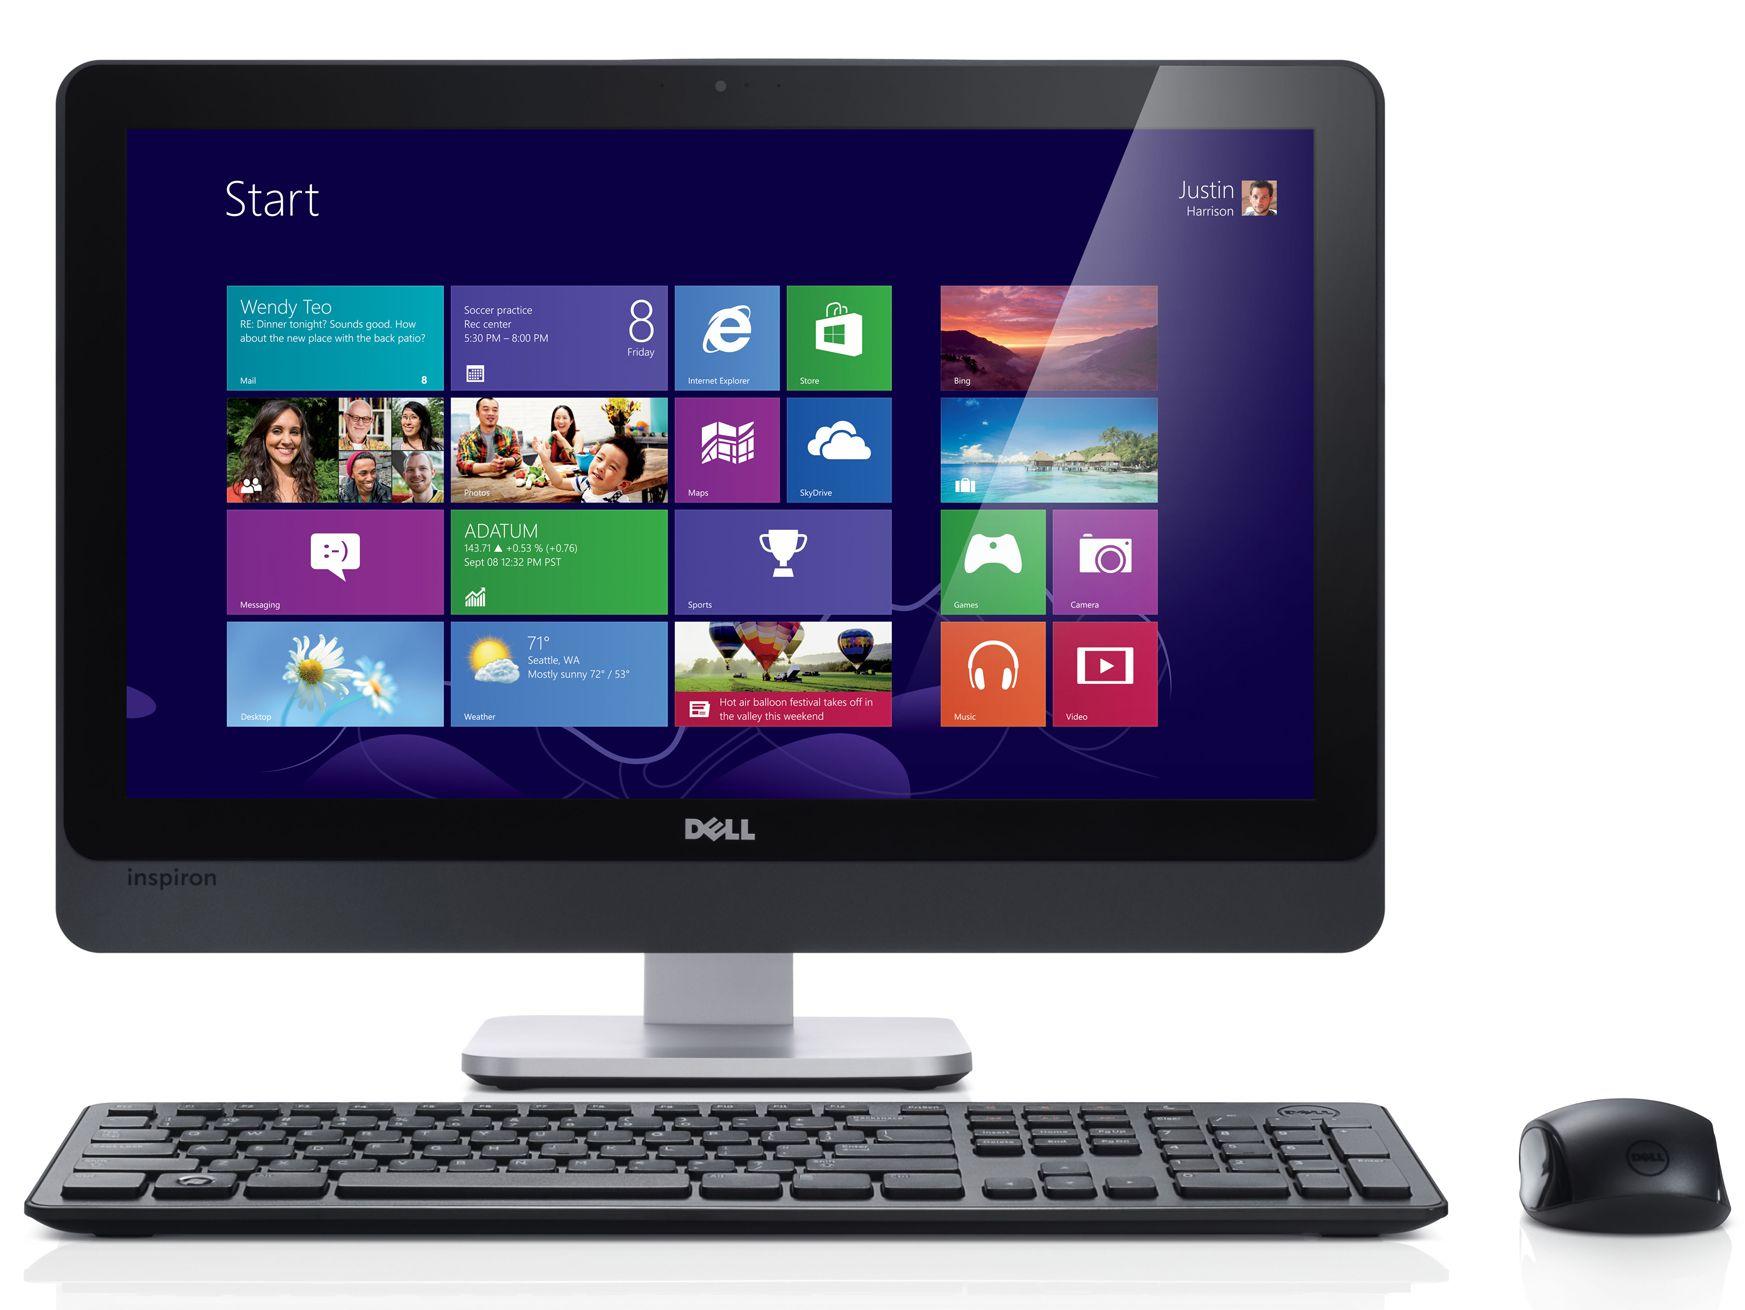 Dell Inspiron One 23 (2330) touch all-in-one desktop computer with KM632 (Burgundy) wireless keyboard and mouse.